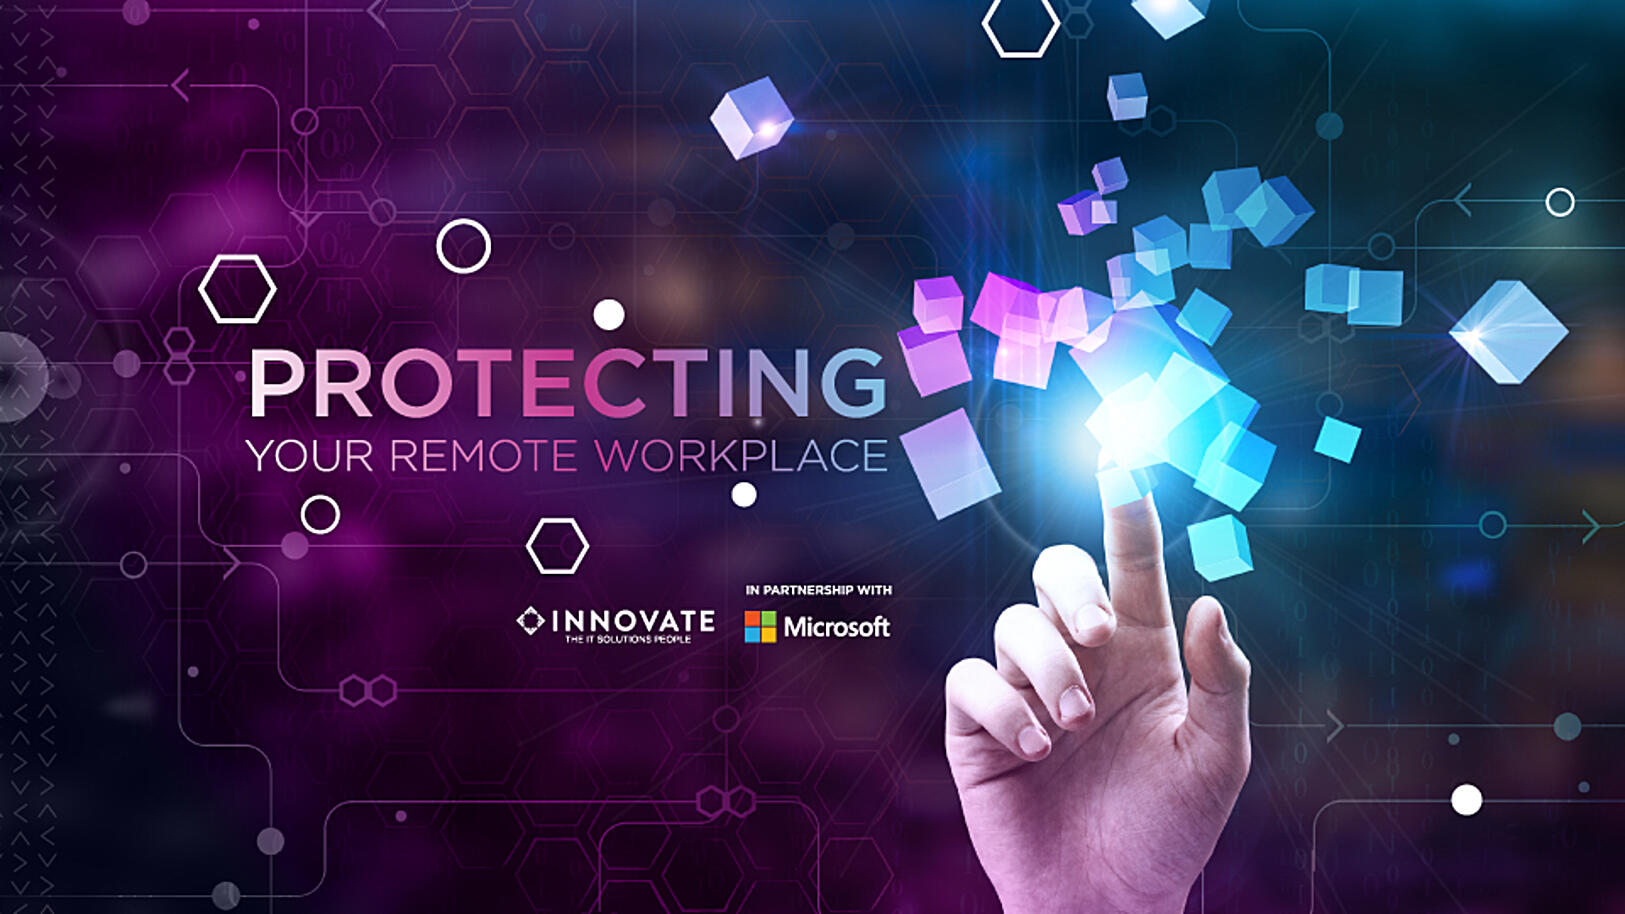 Protect remote workplace